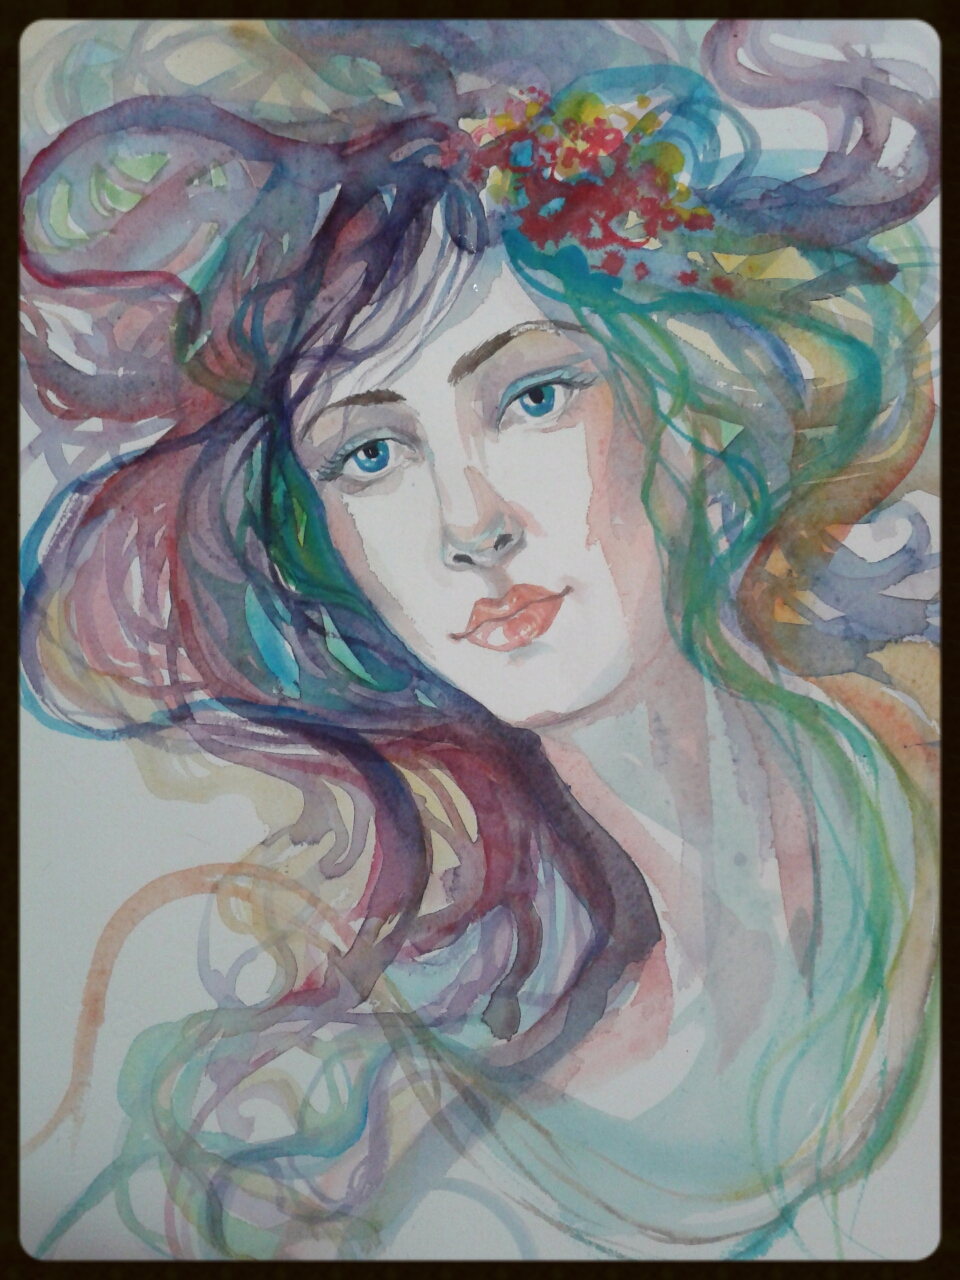 EDITBAKK ORIGINAL WATERCOLOR LILI 15 x 11   $1800